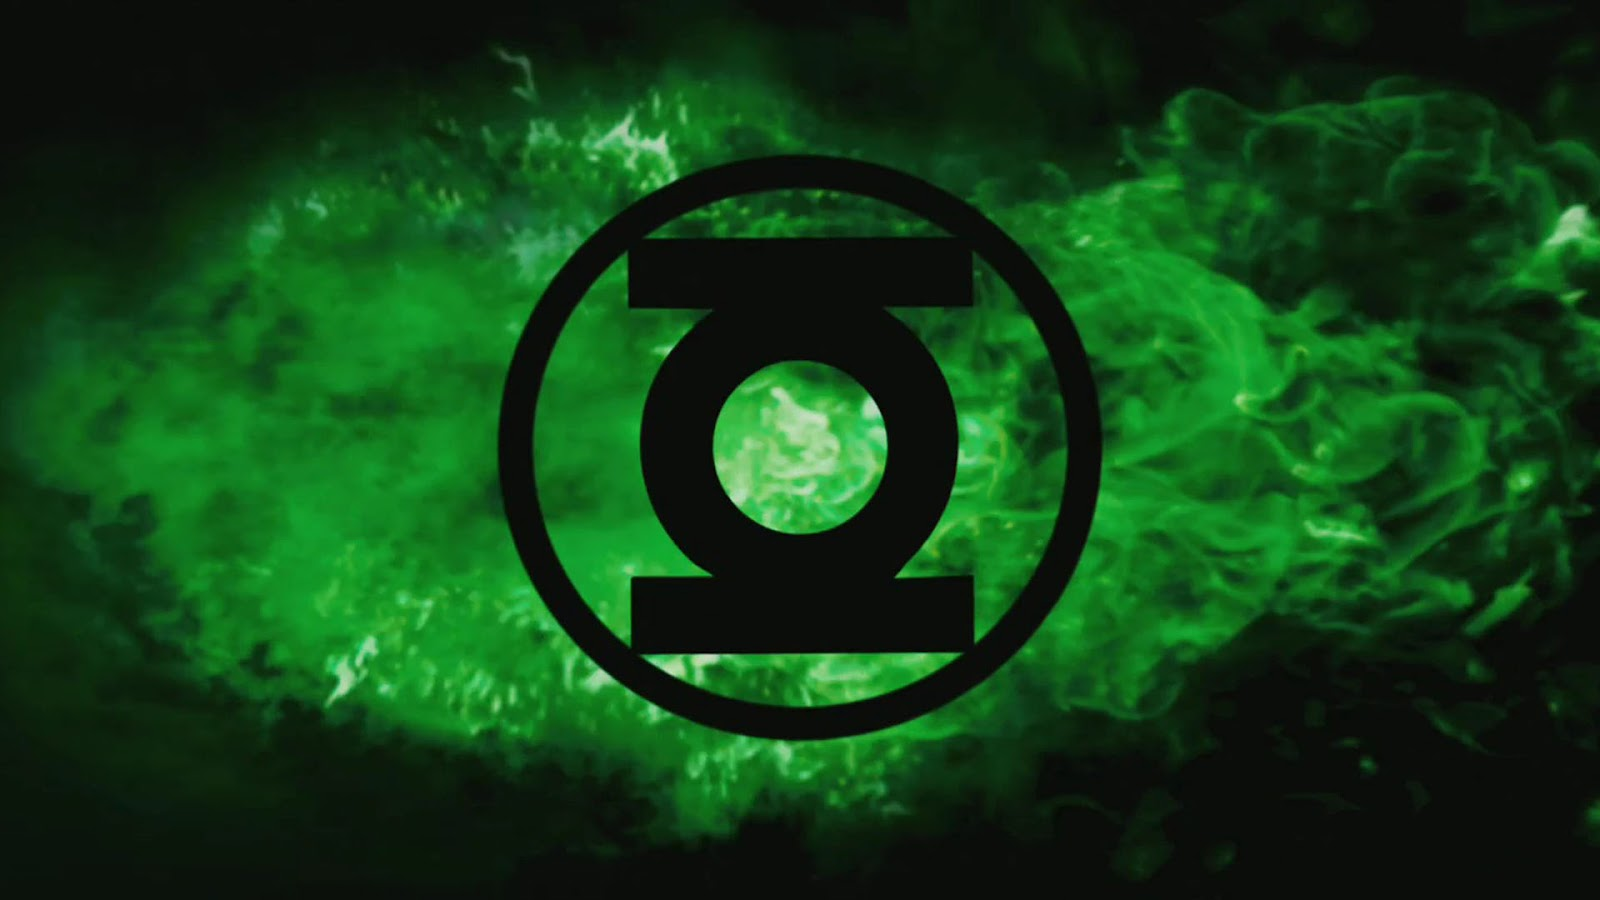 Wallpaper Movie - lantern Green - For PC | Impact Wallpapers